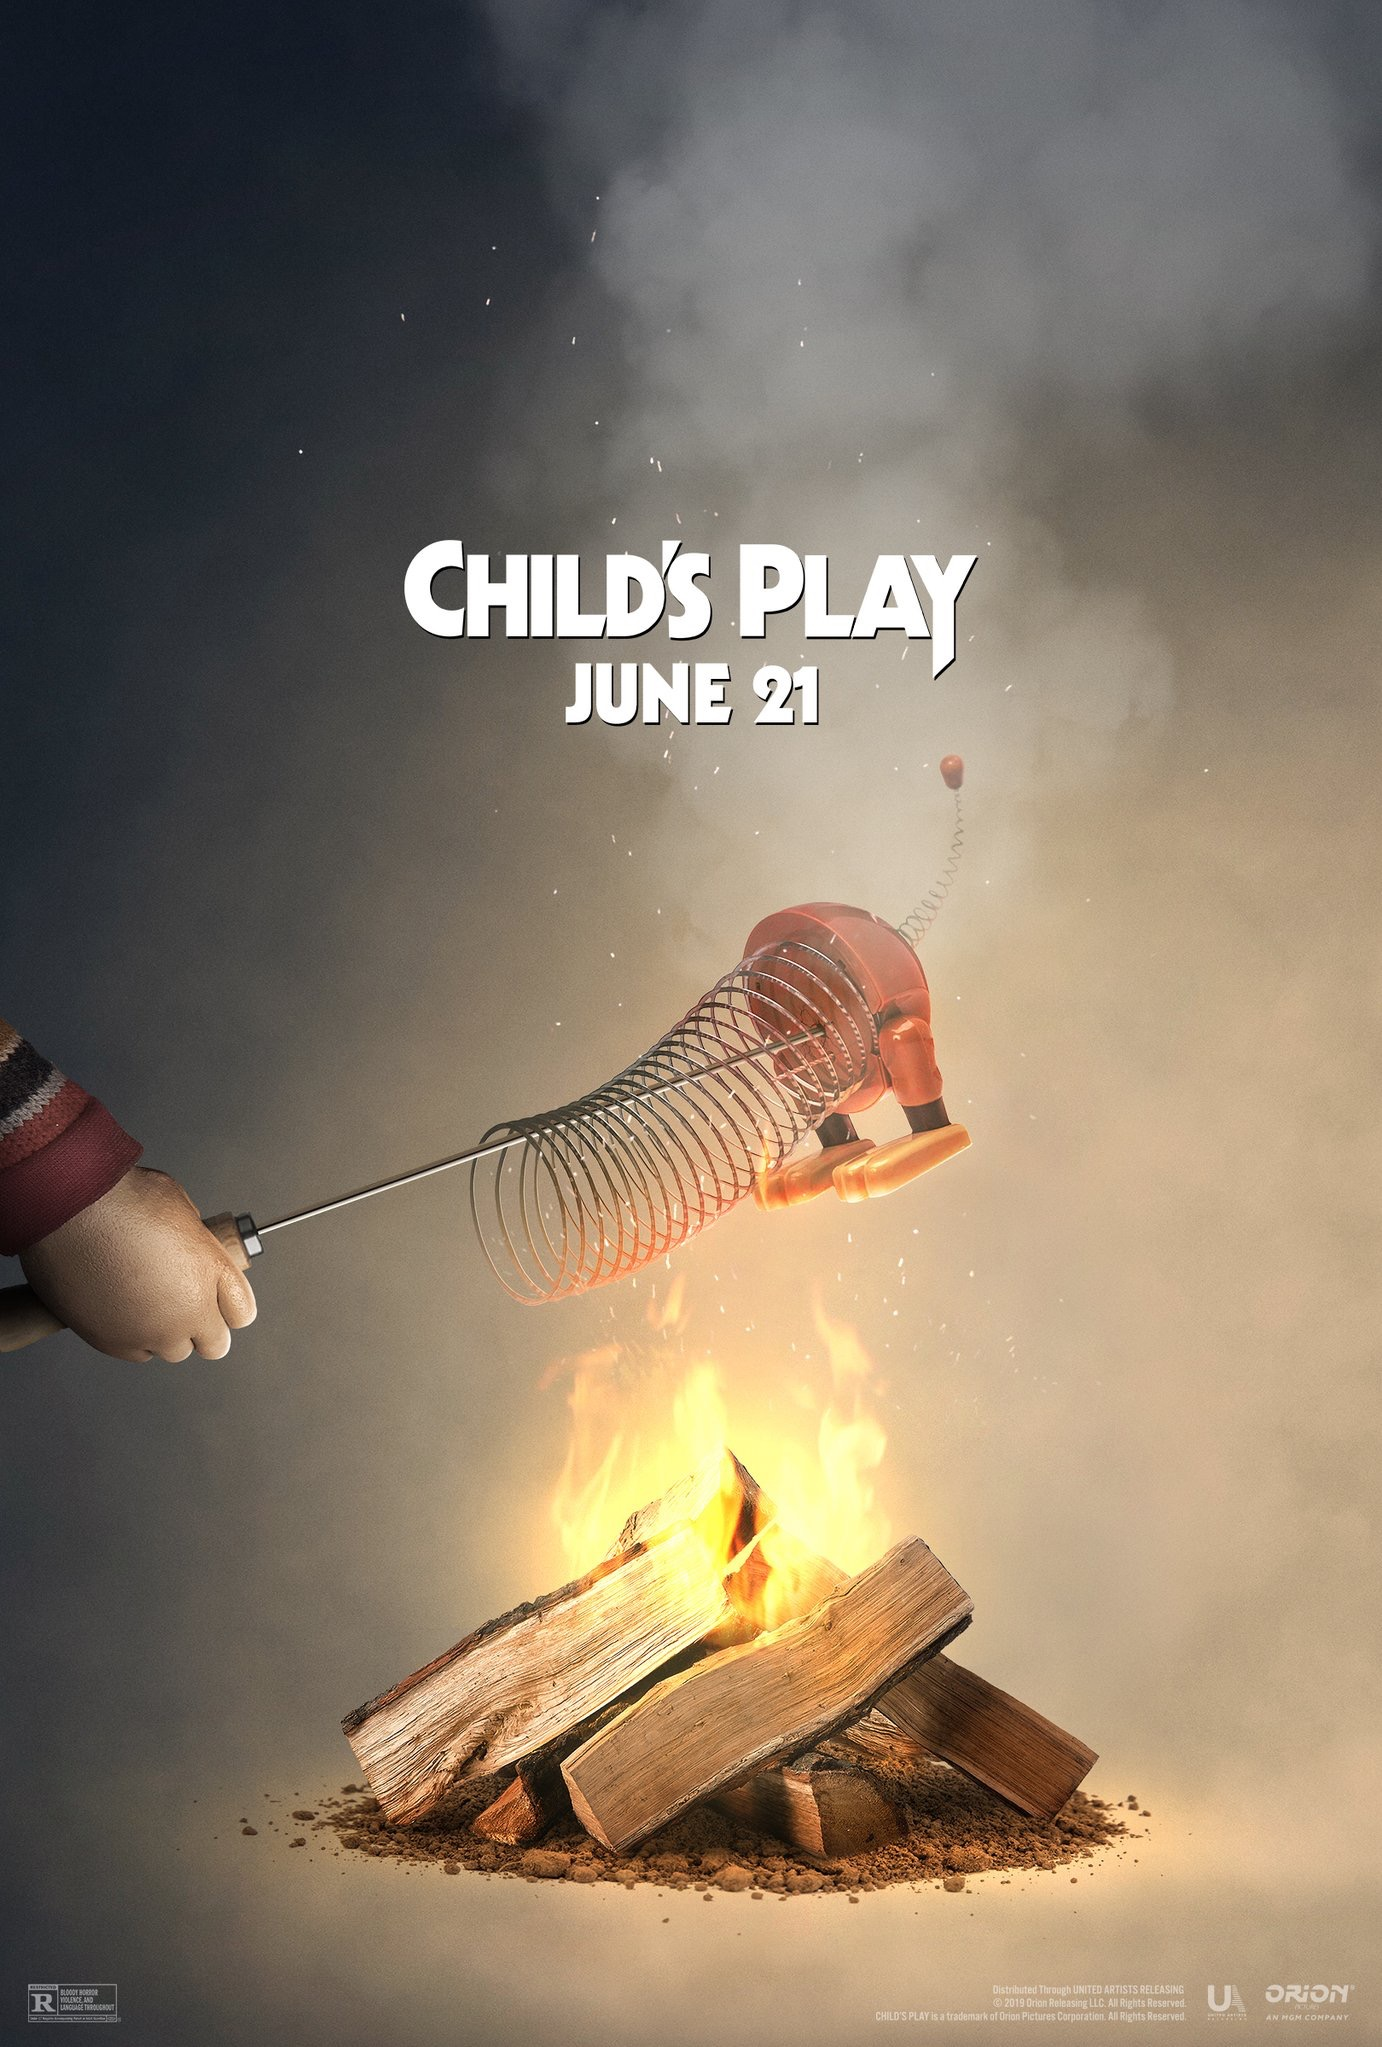 chucky-roasts-slinky-from-toy-story-over-a-fire-in-a-new-childs-play-poster2